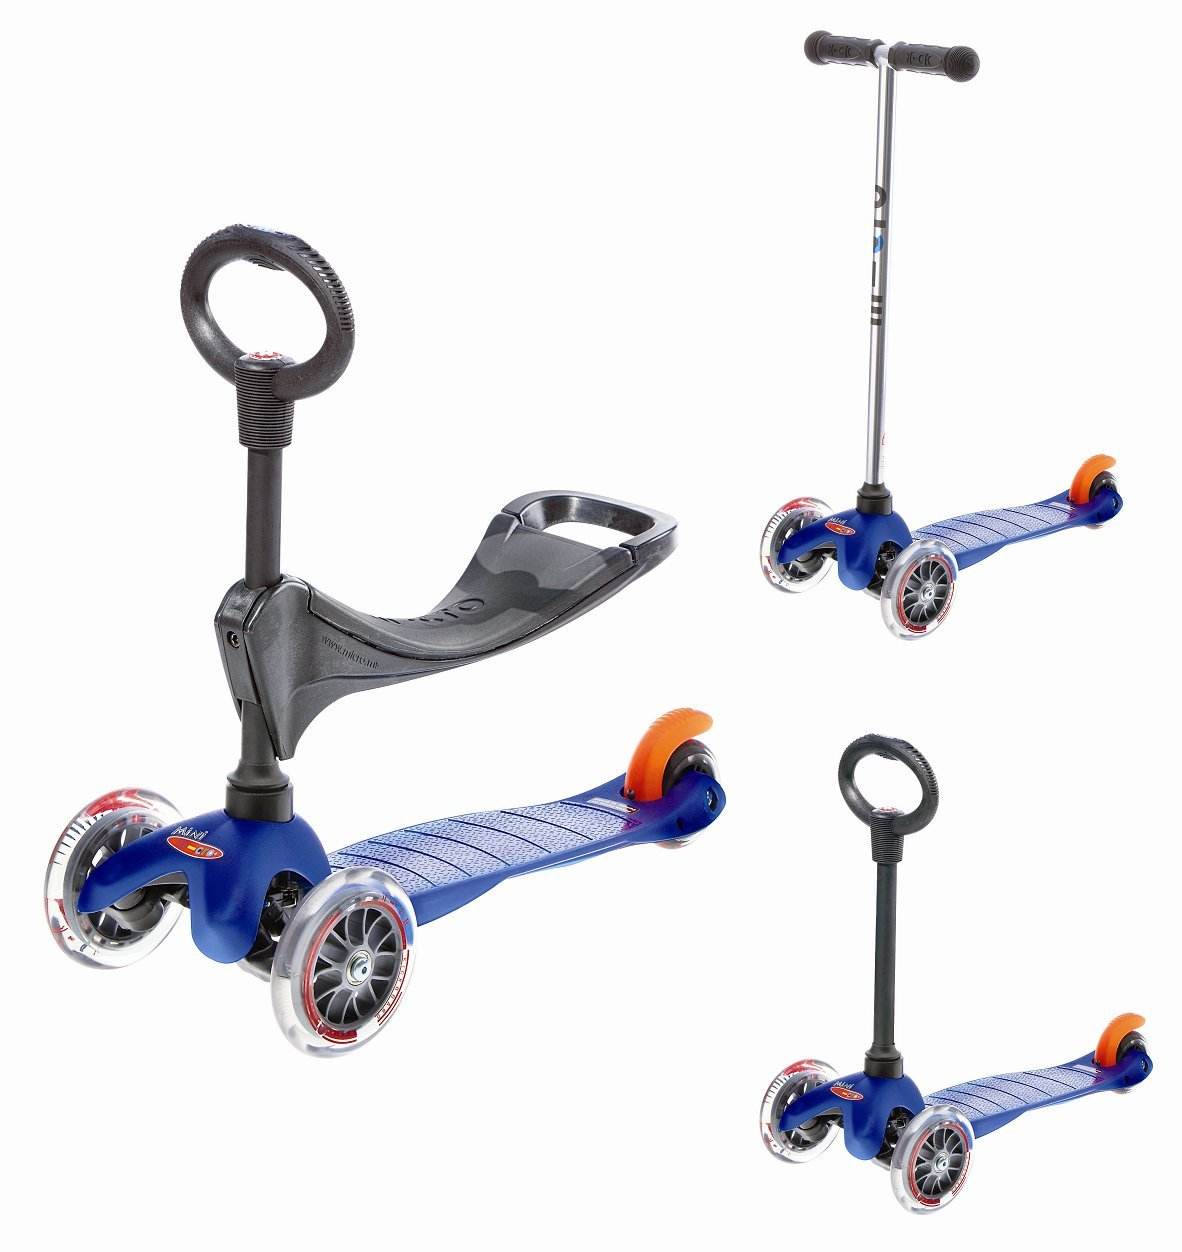 Compare Scooters For Kids Teens Kick Electric Gas